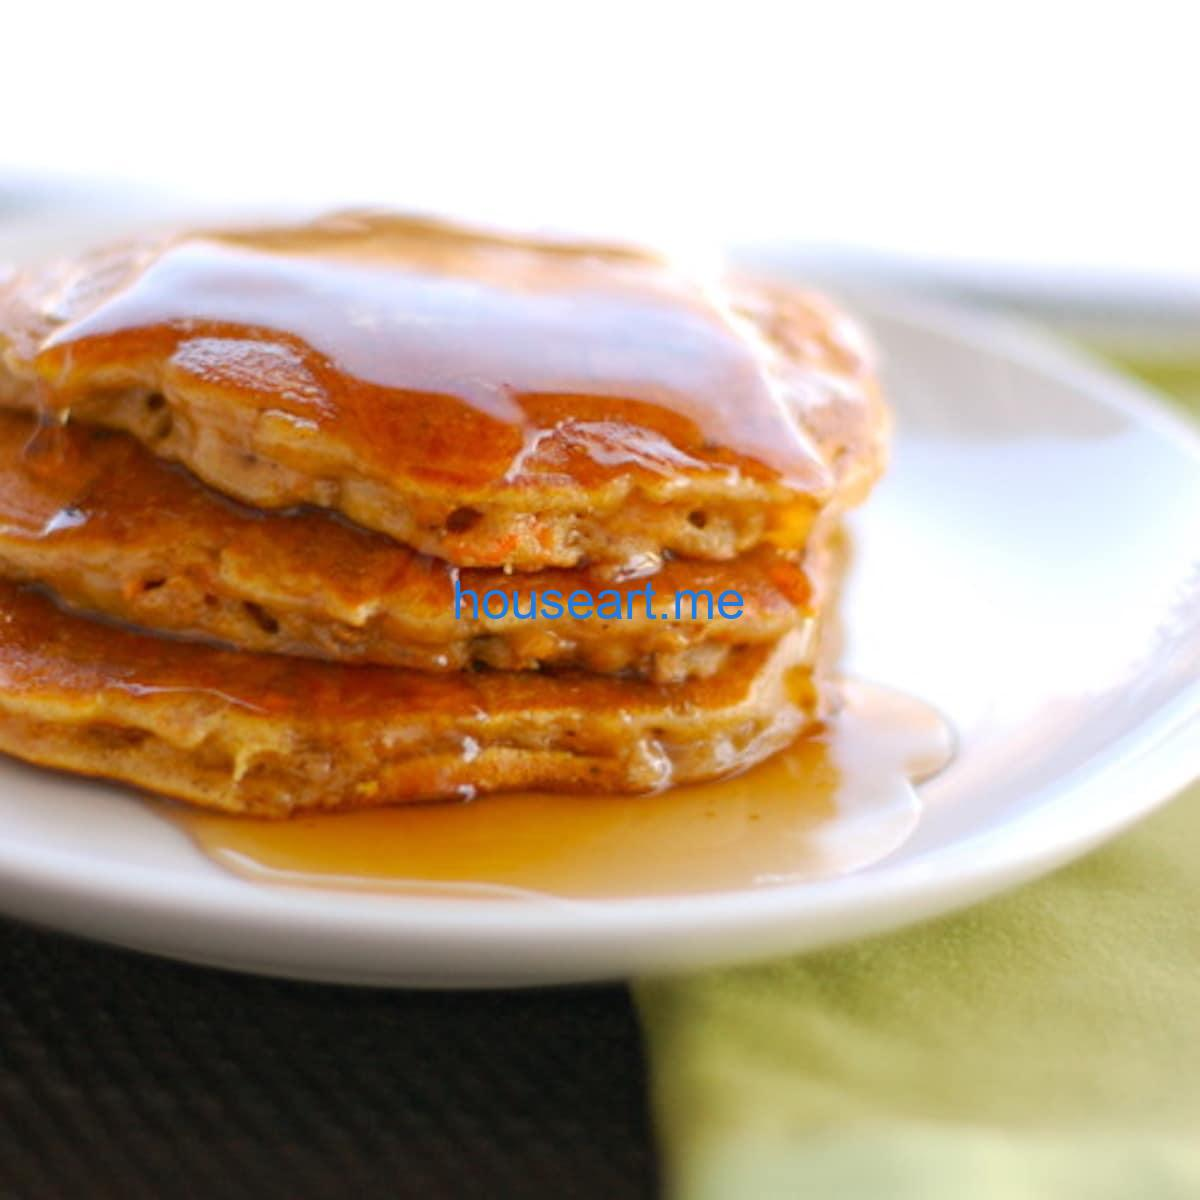 Cinnamon apple carrot pancakes with syrup drizzle on a white plate.